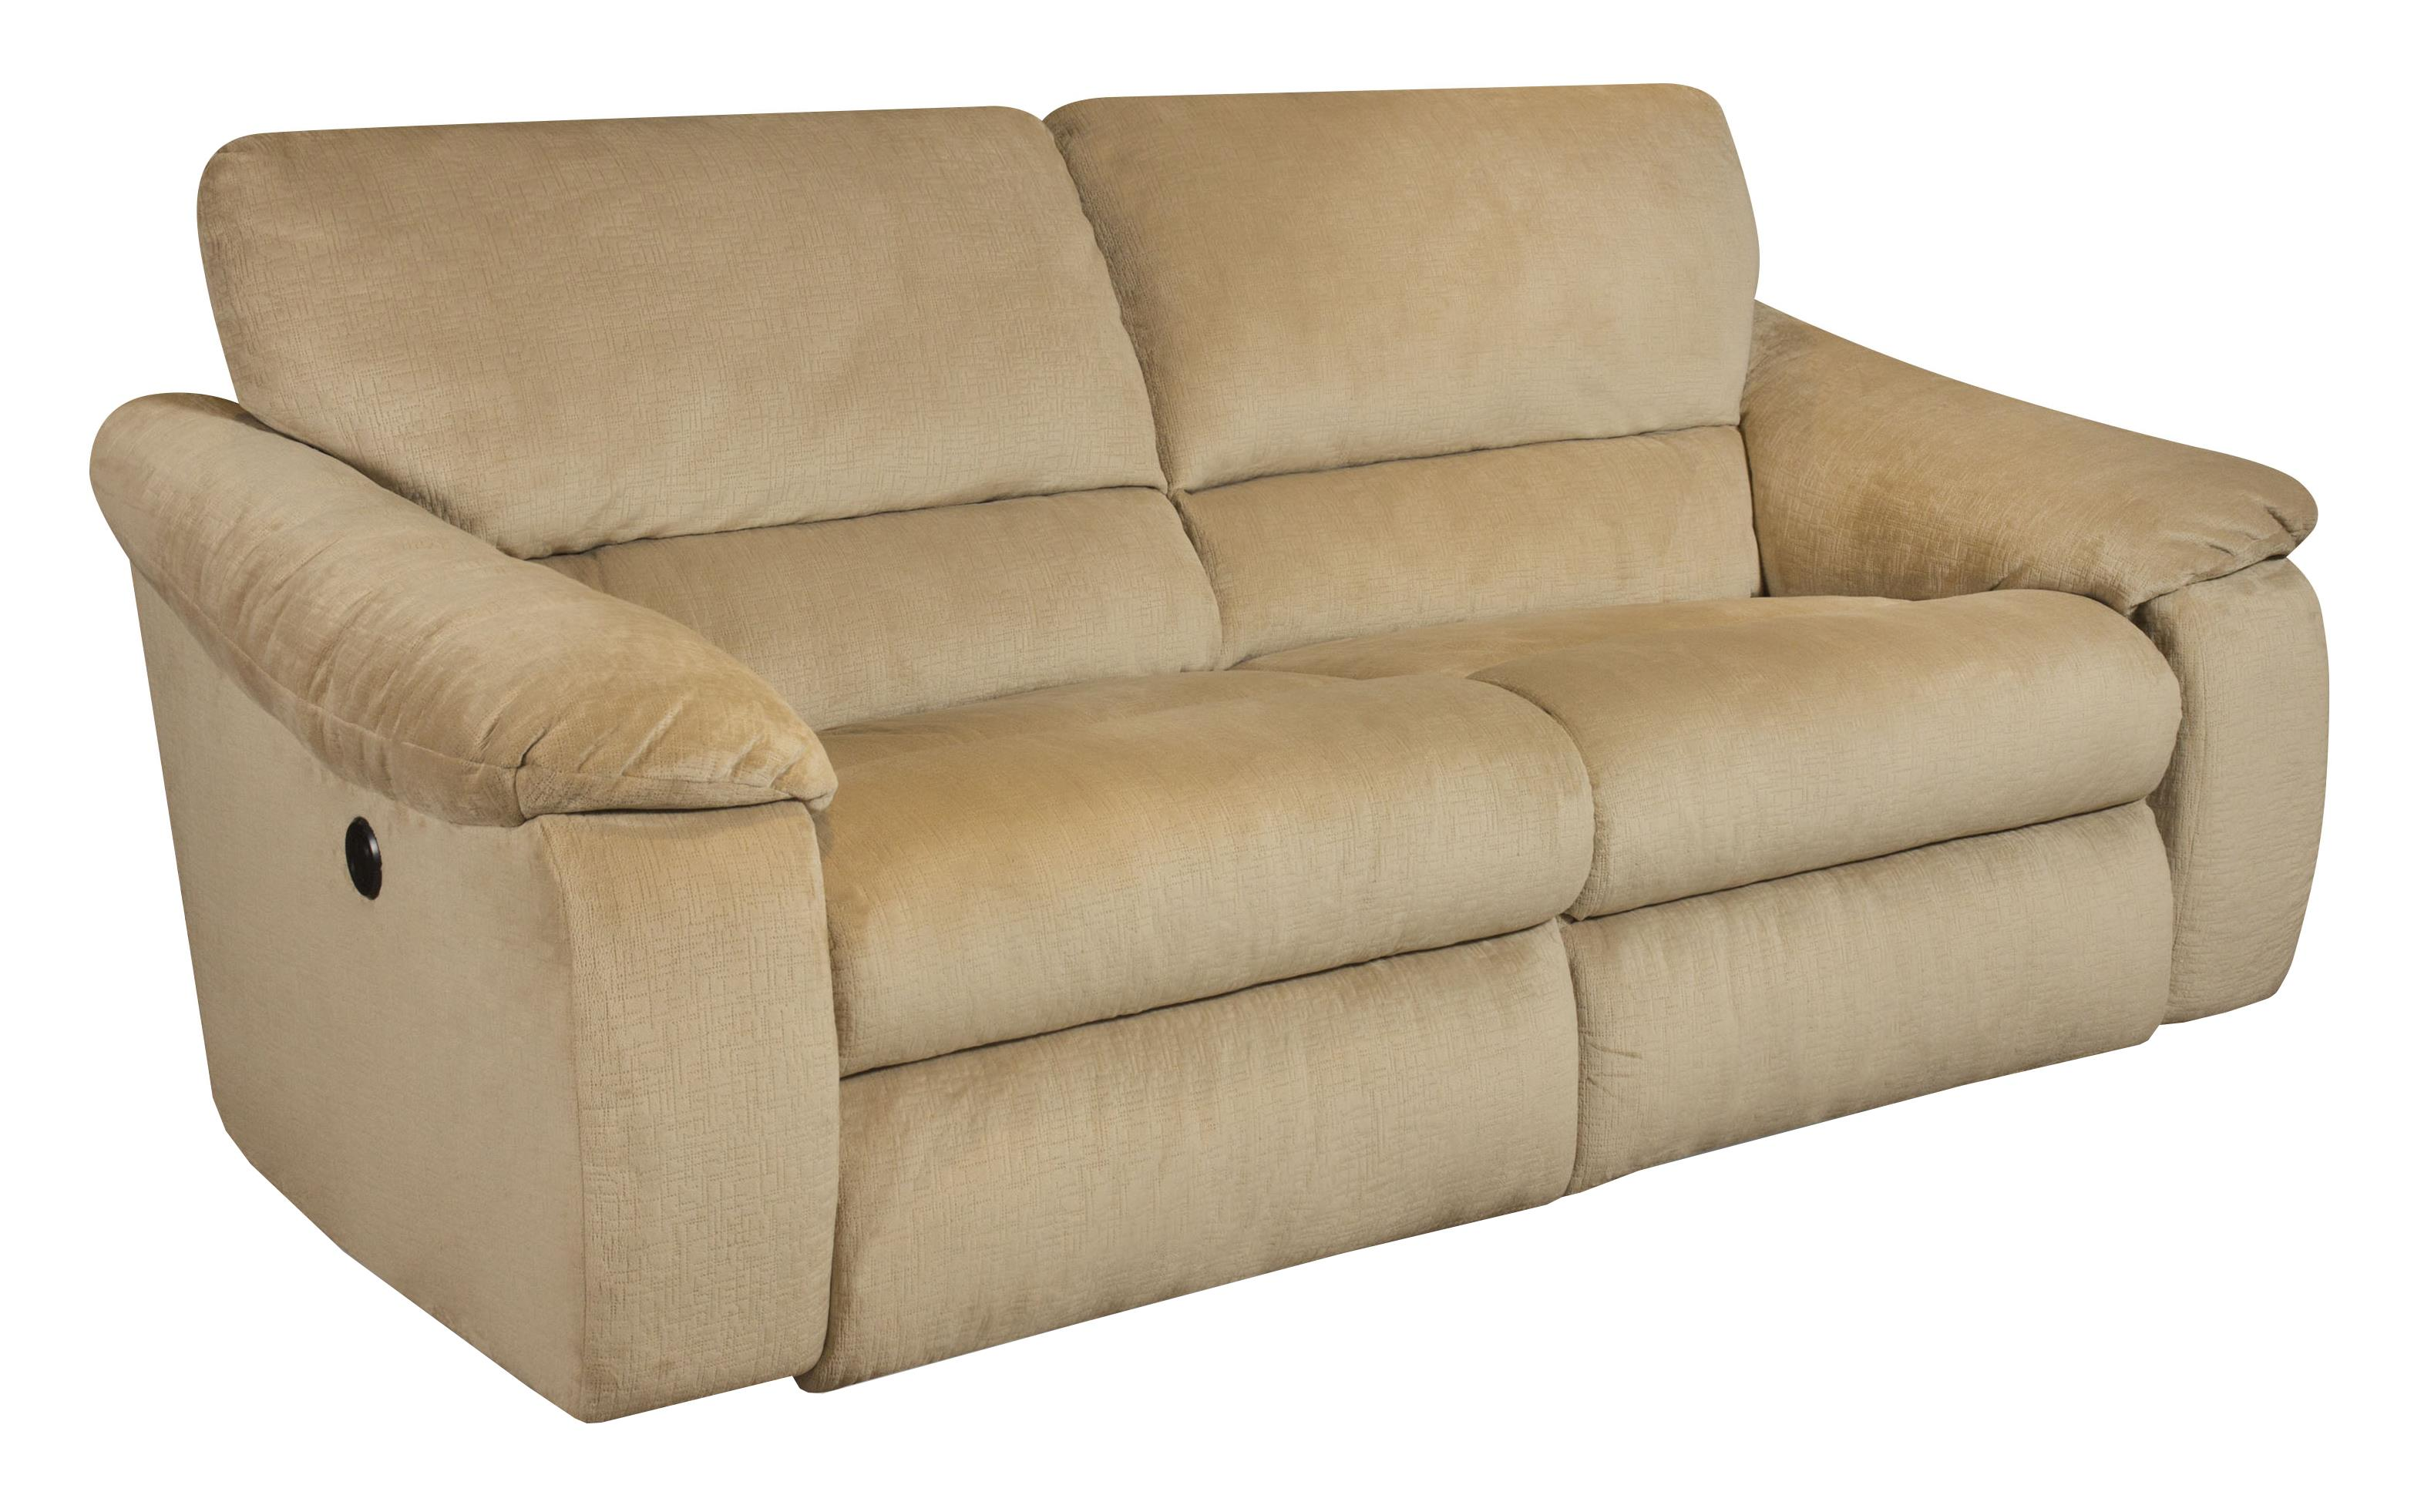 Southern Motion Gravity Double Reclining Sofa with 2 Wide Seats - Item Number: 867-30-296-16